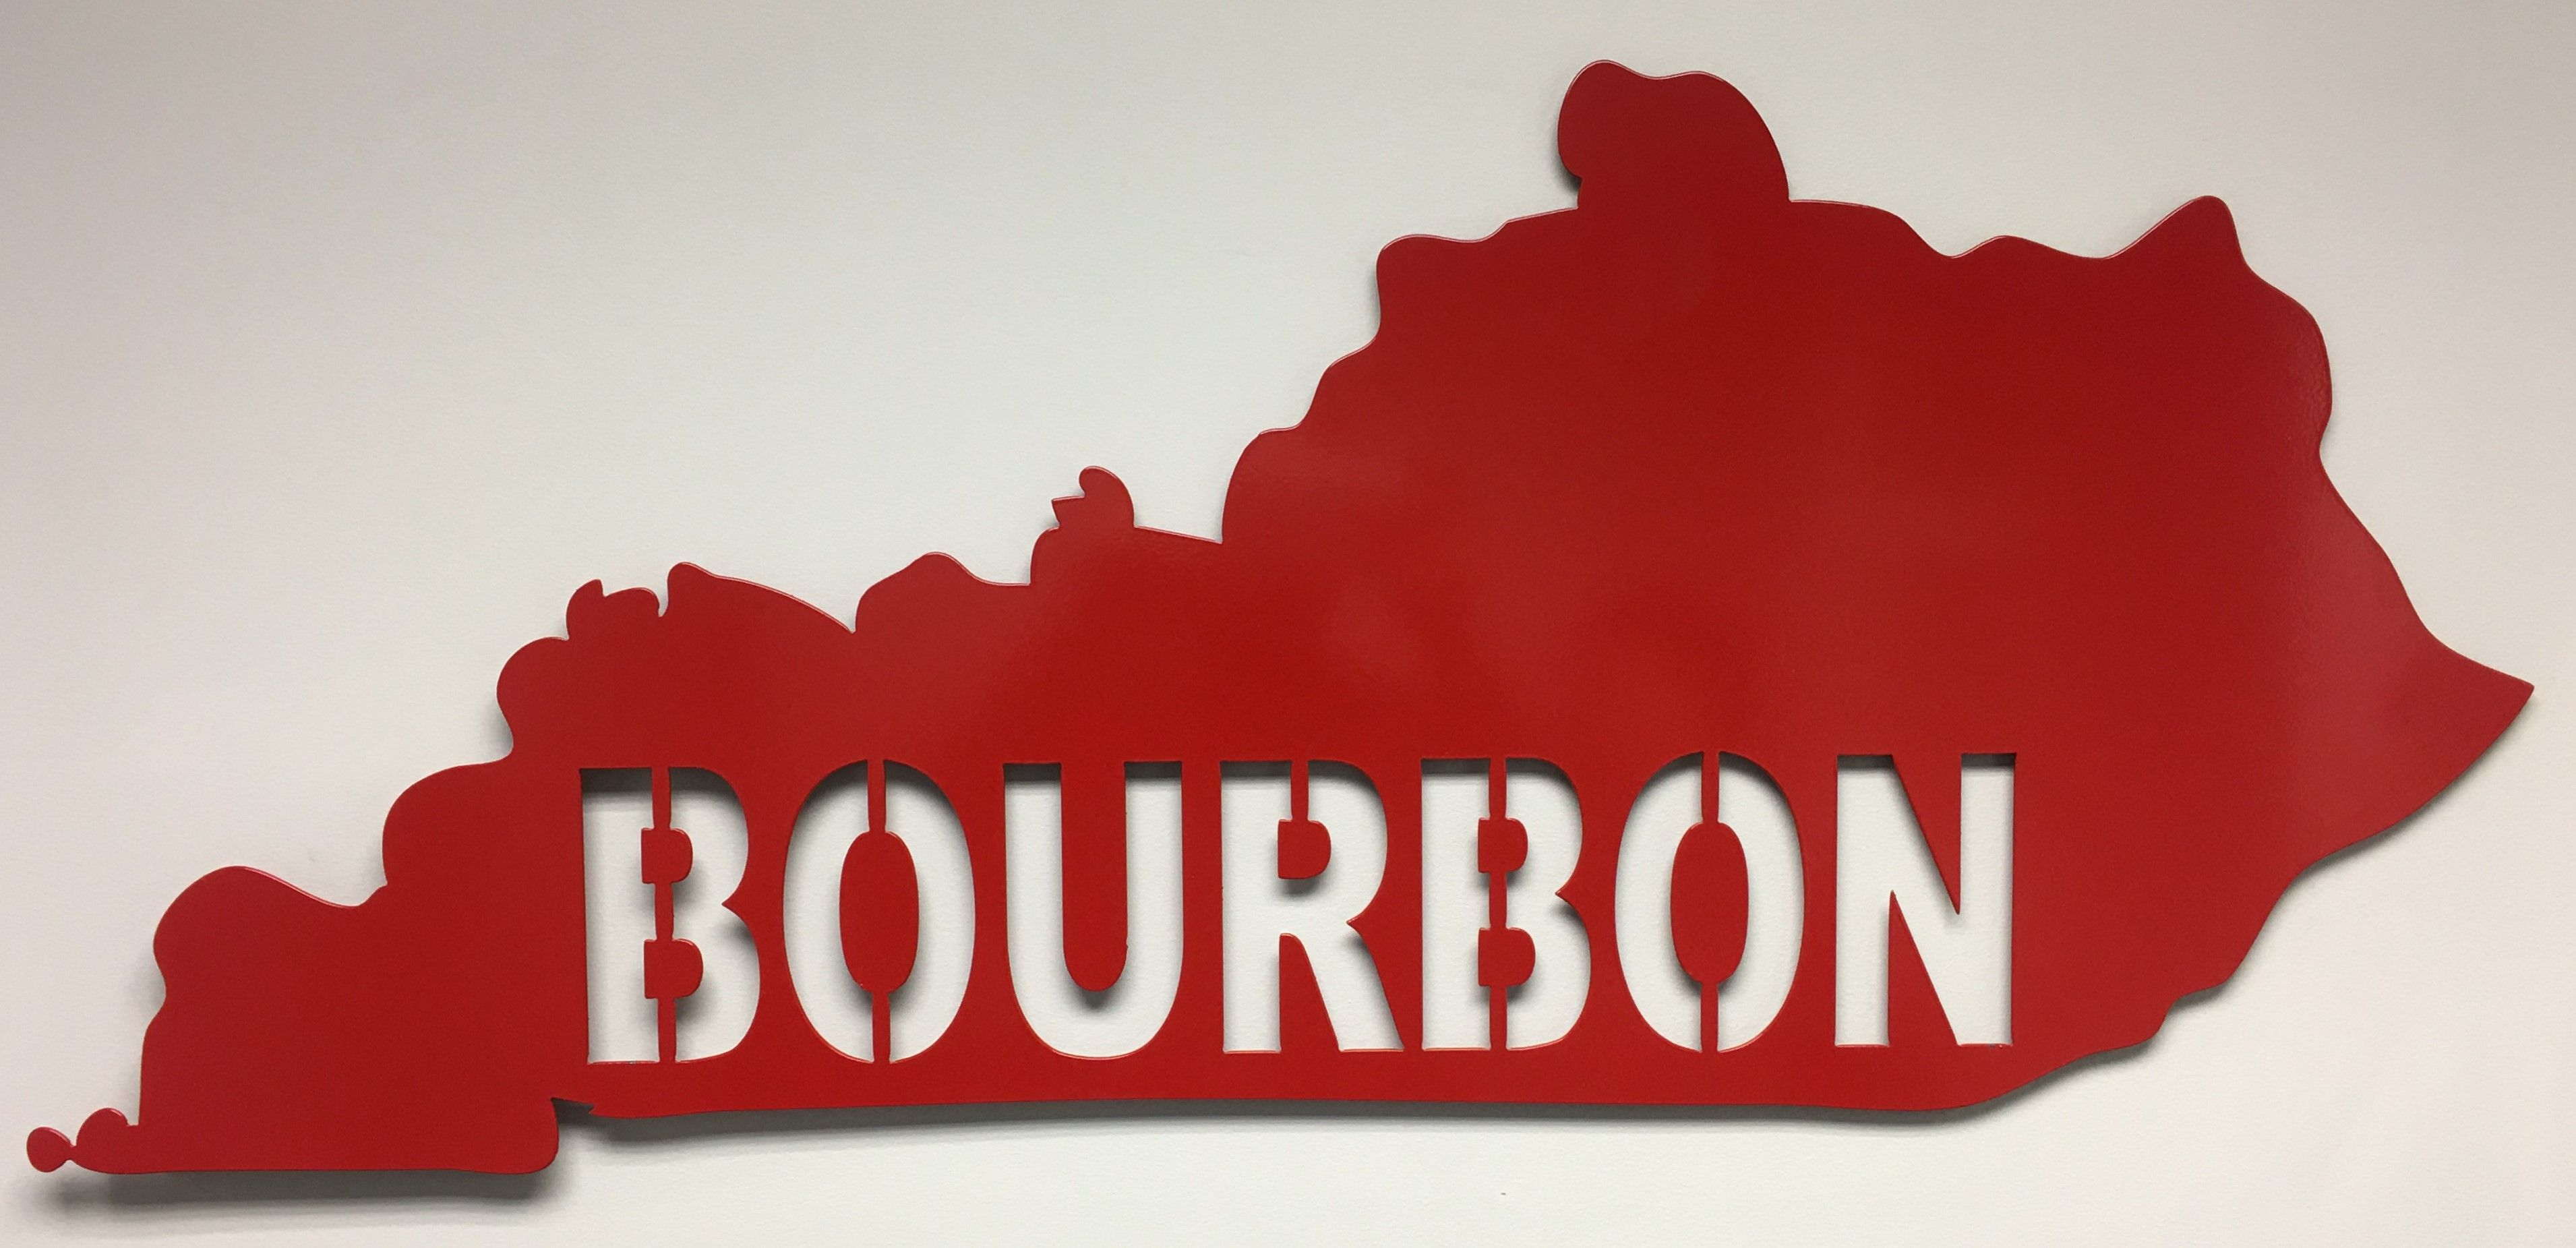 State of kentucky with bourbon cutout this large